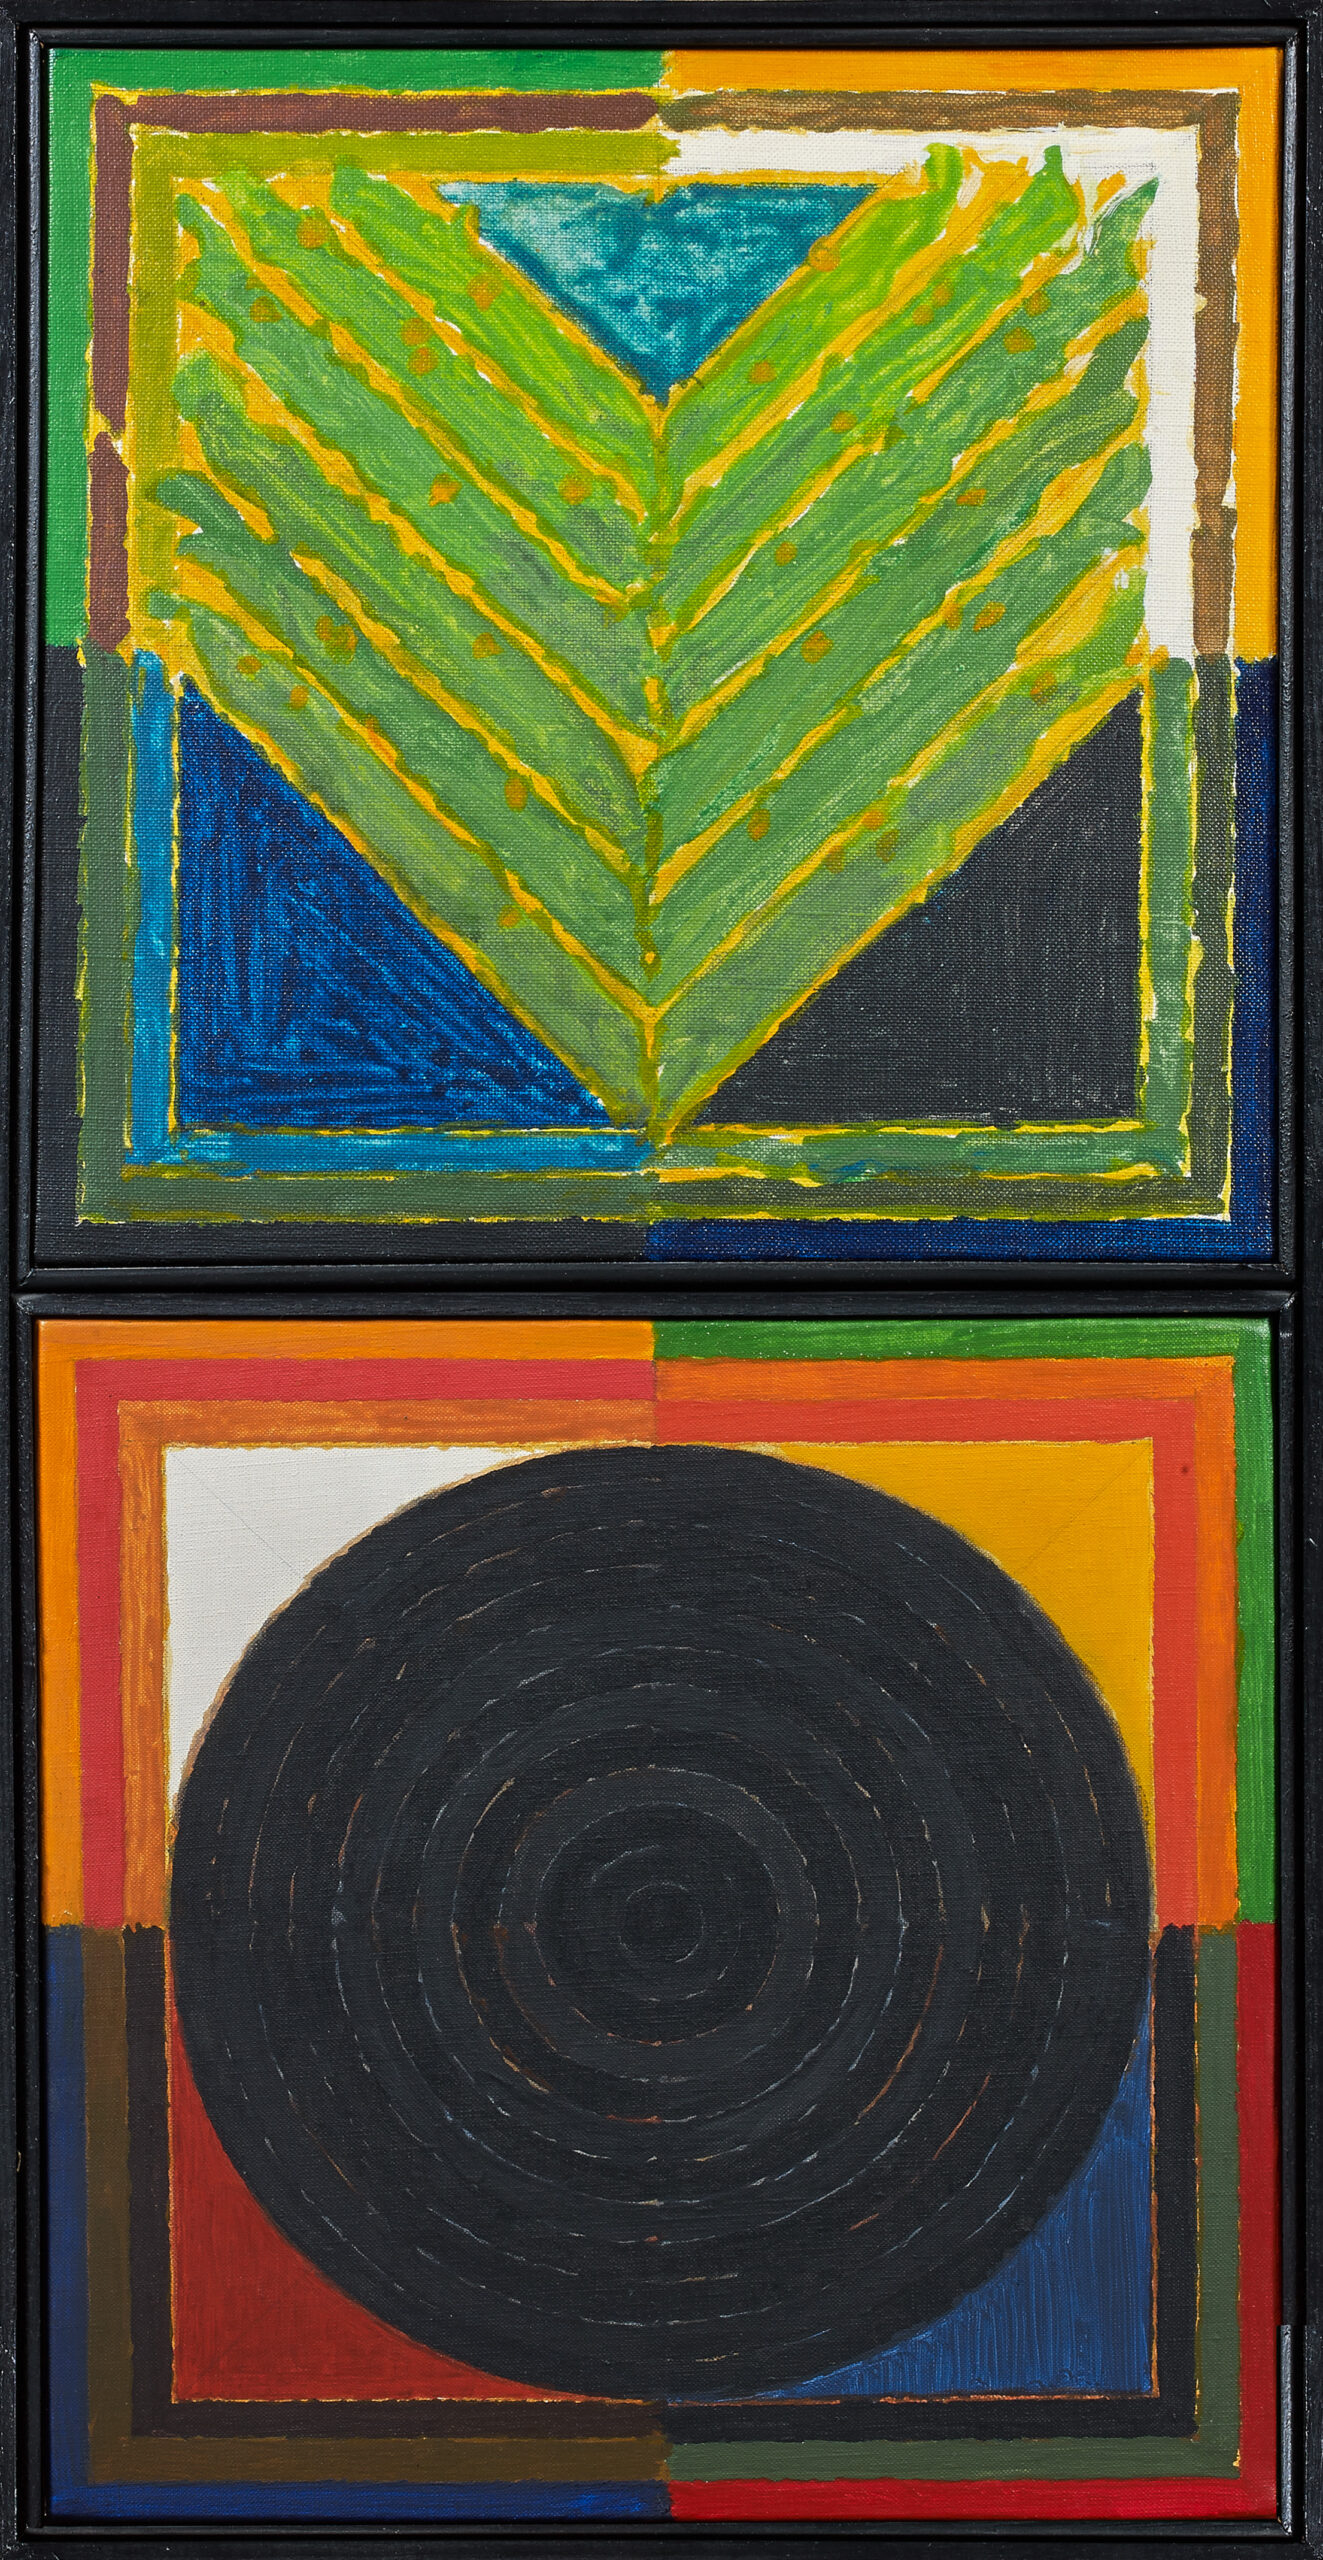 SAYED HAIDER RAZA (1922-2016)